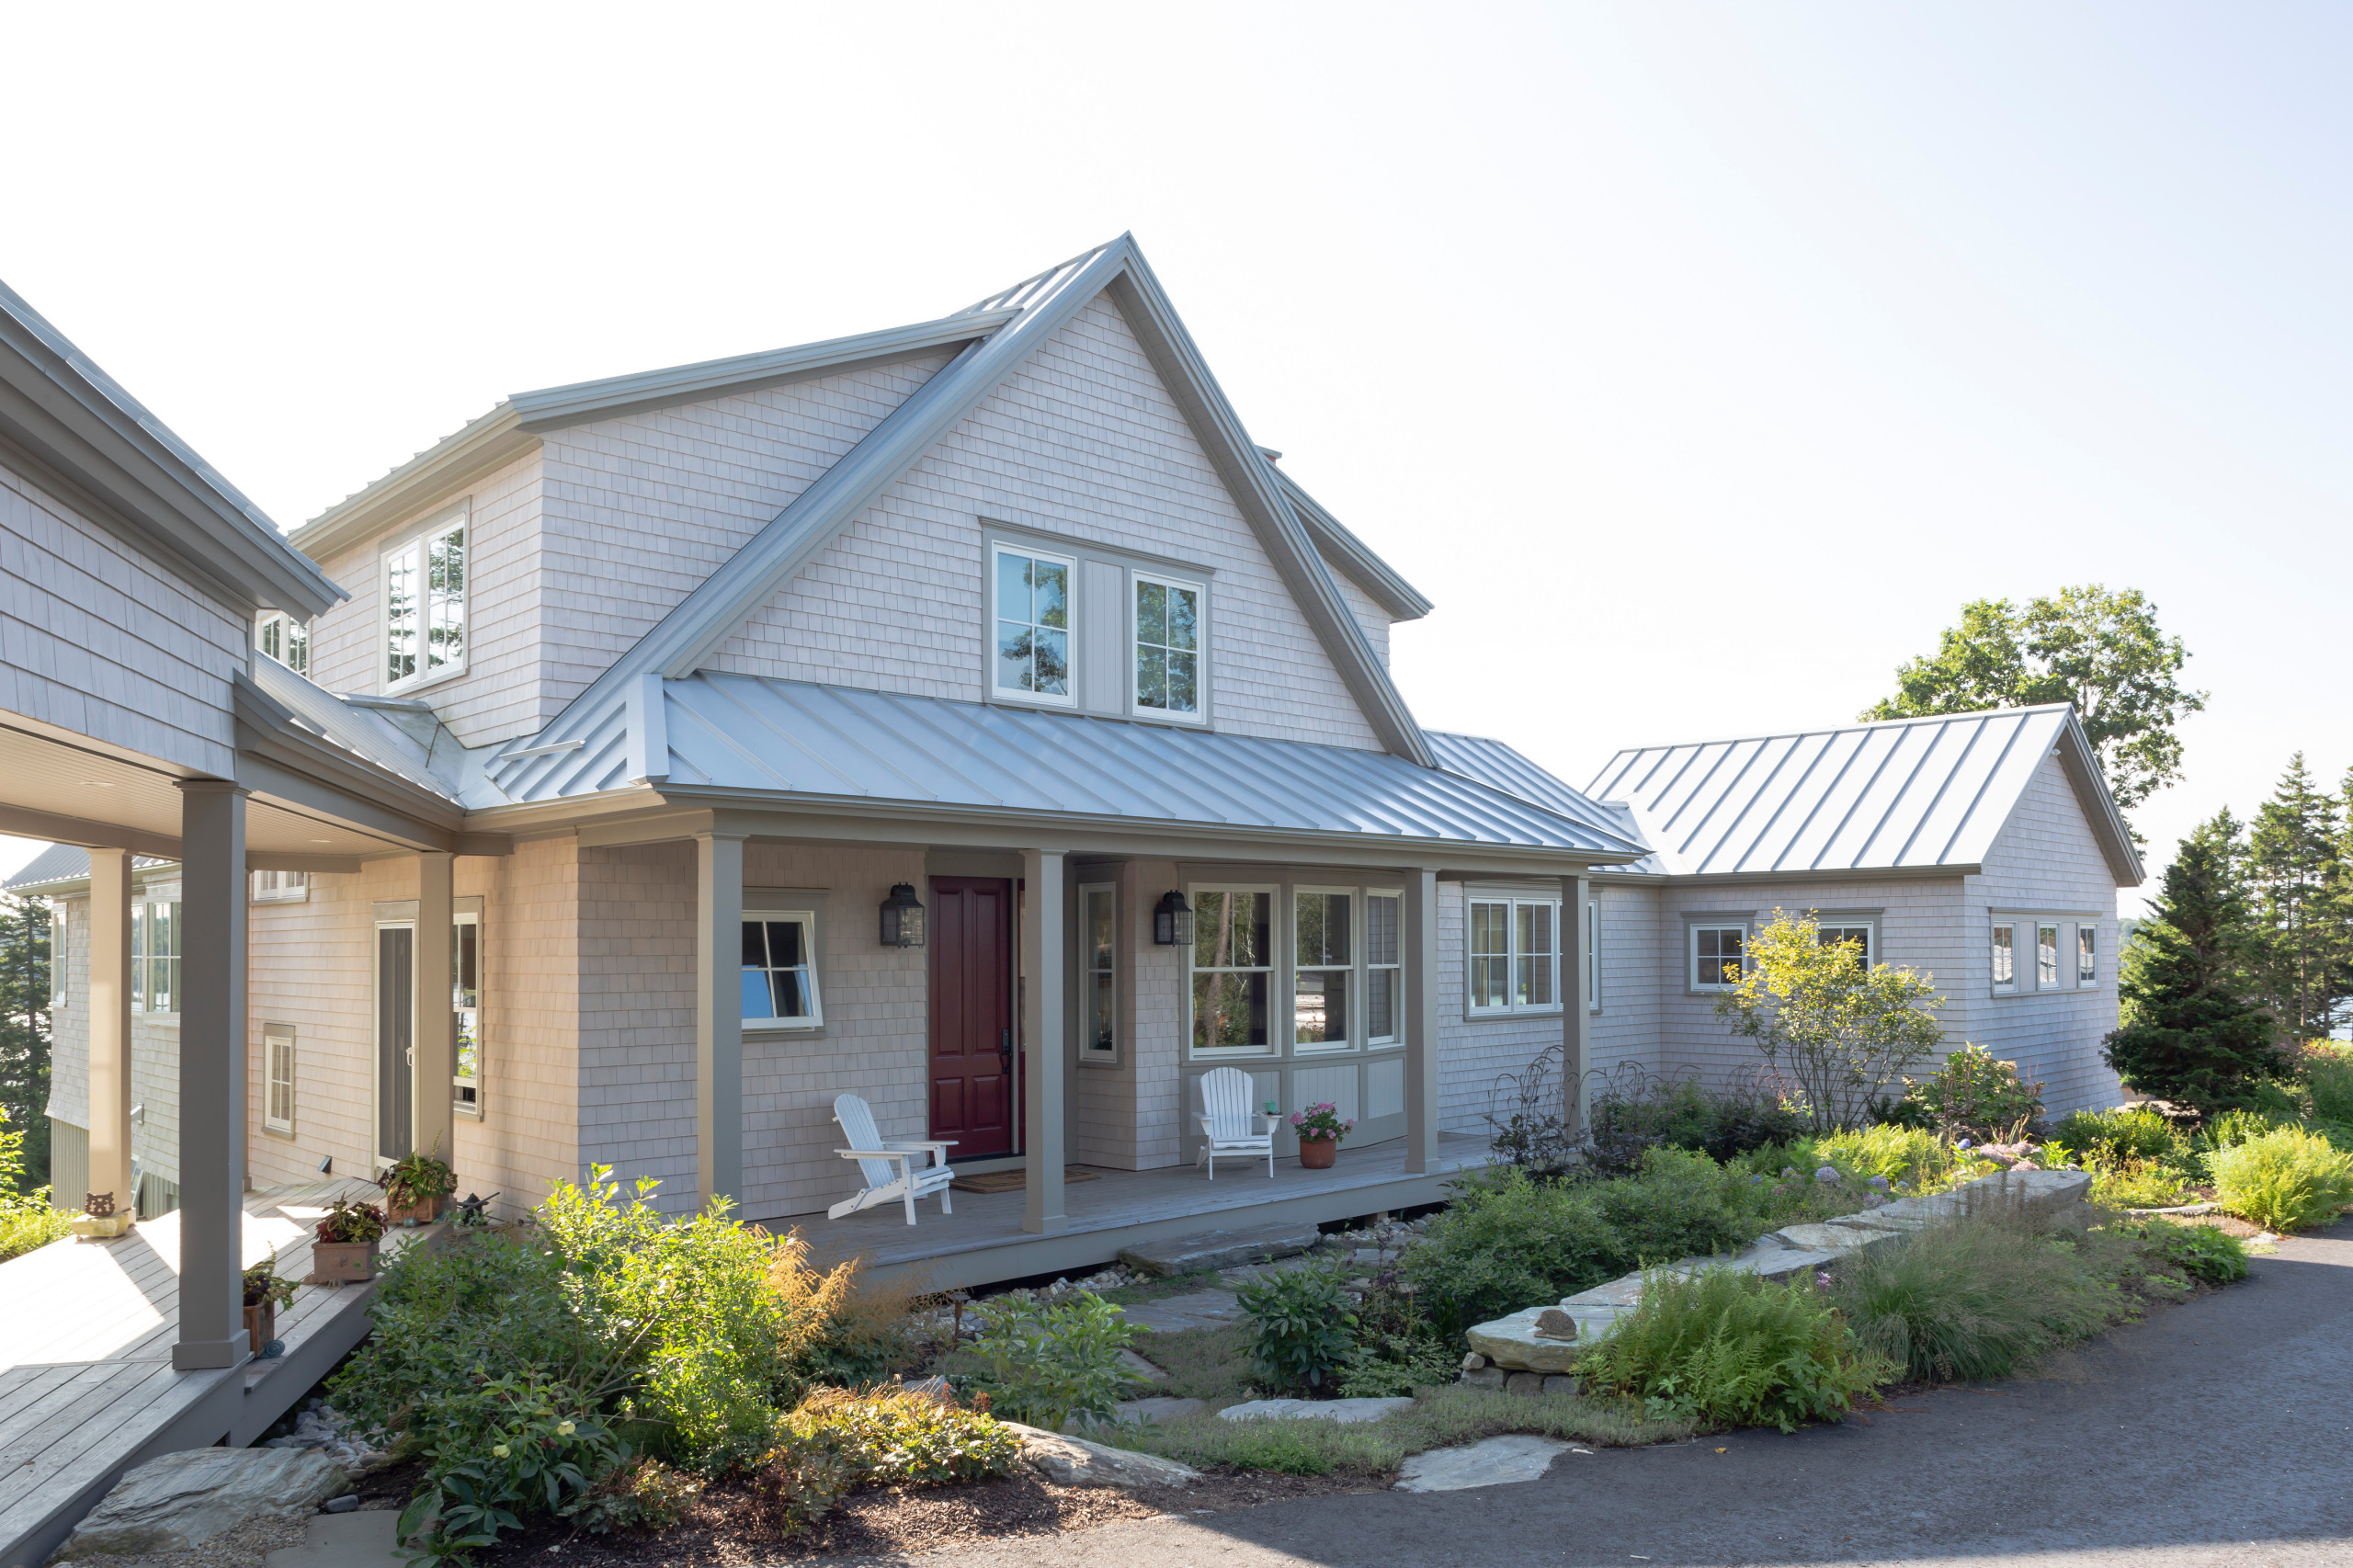 75 Beautiful Exterior Home Pictures Ideas November 2020 Houzz